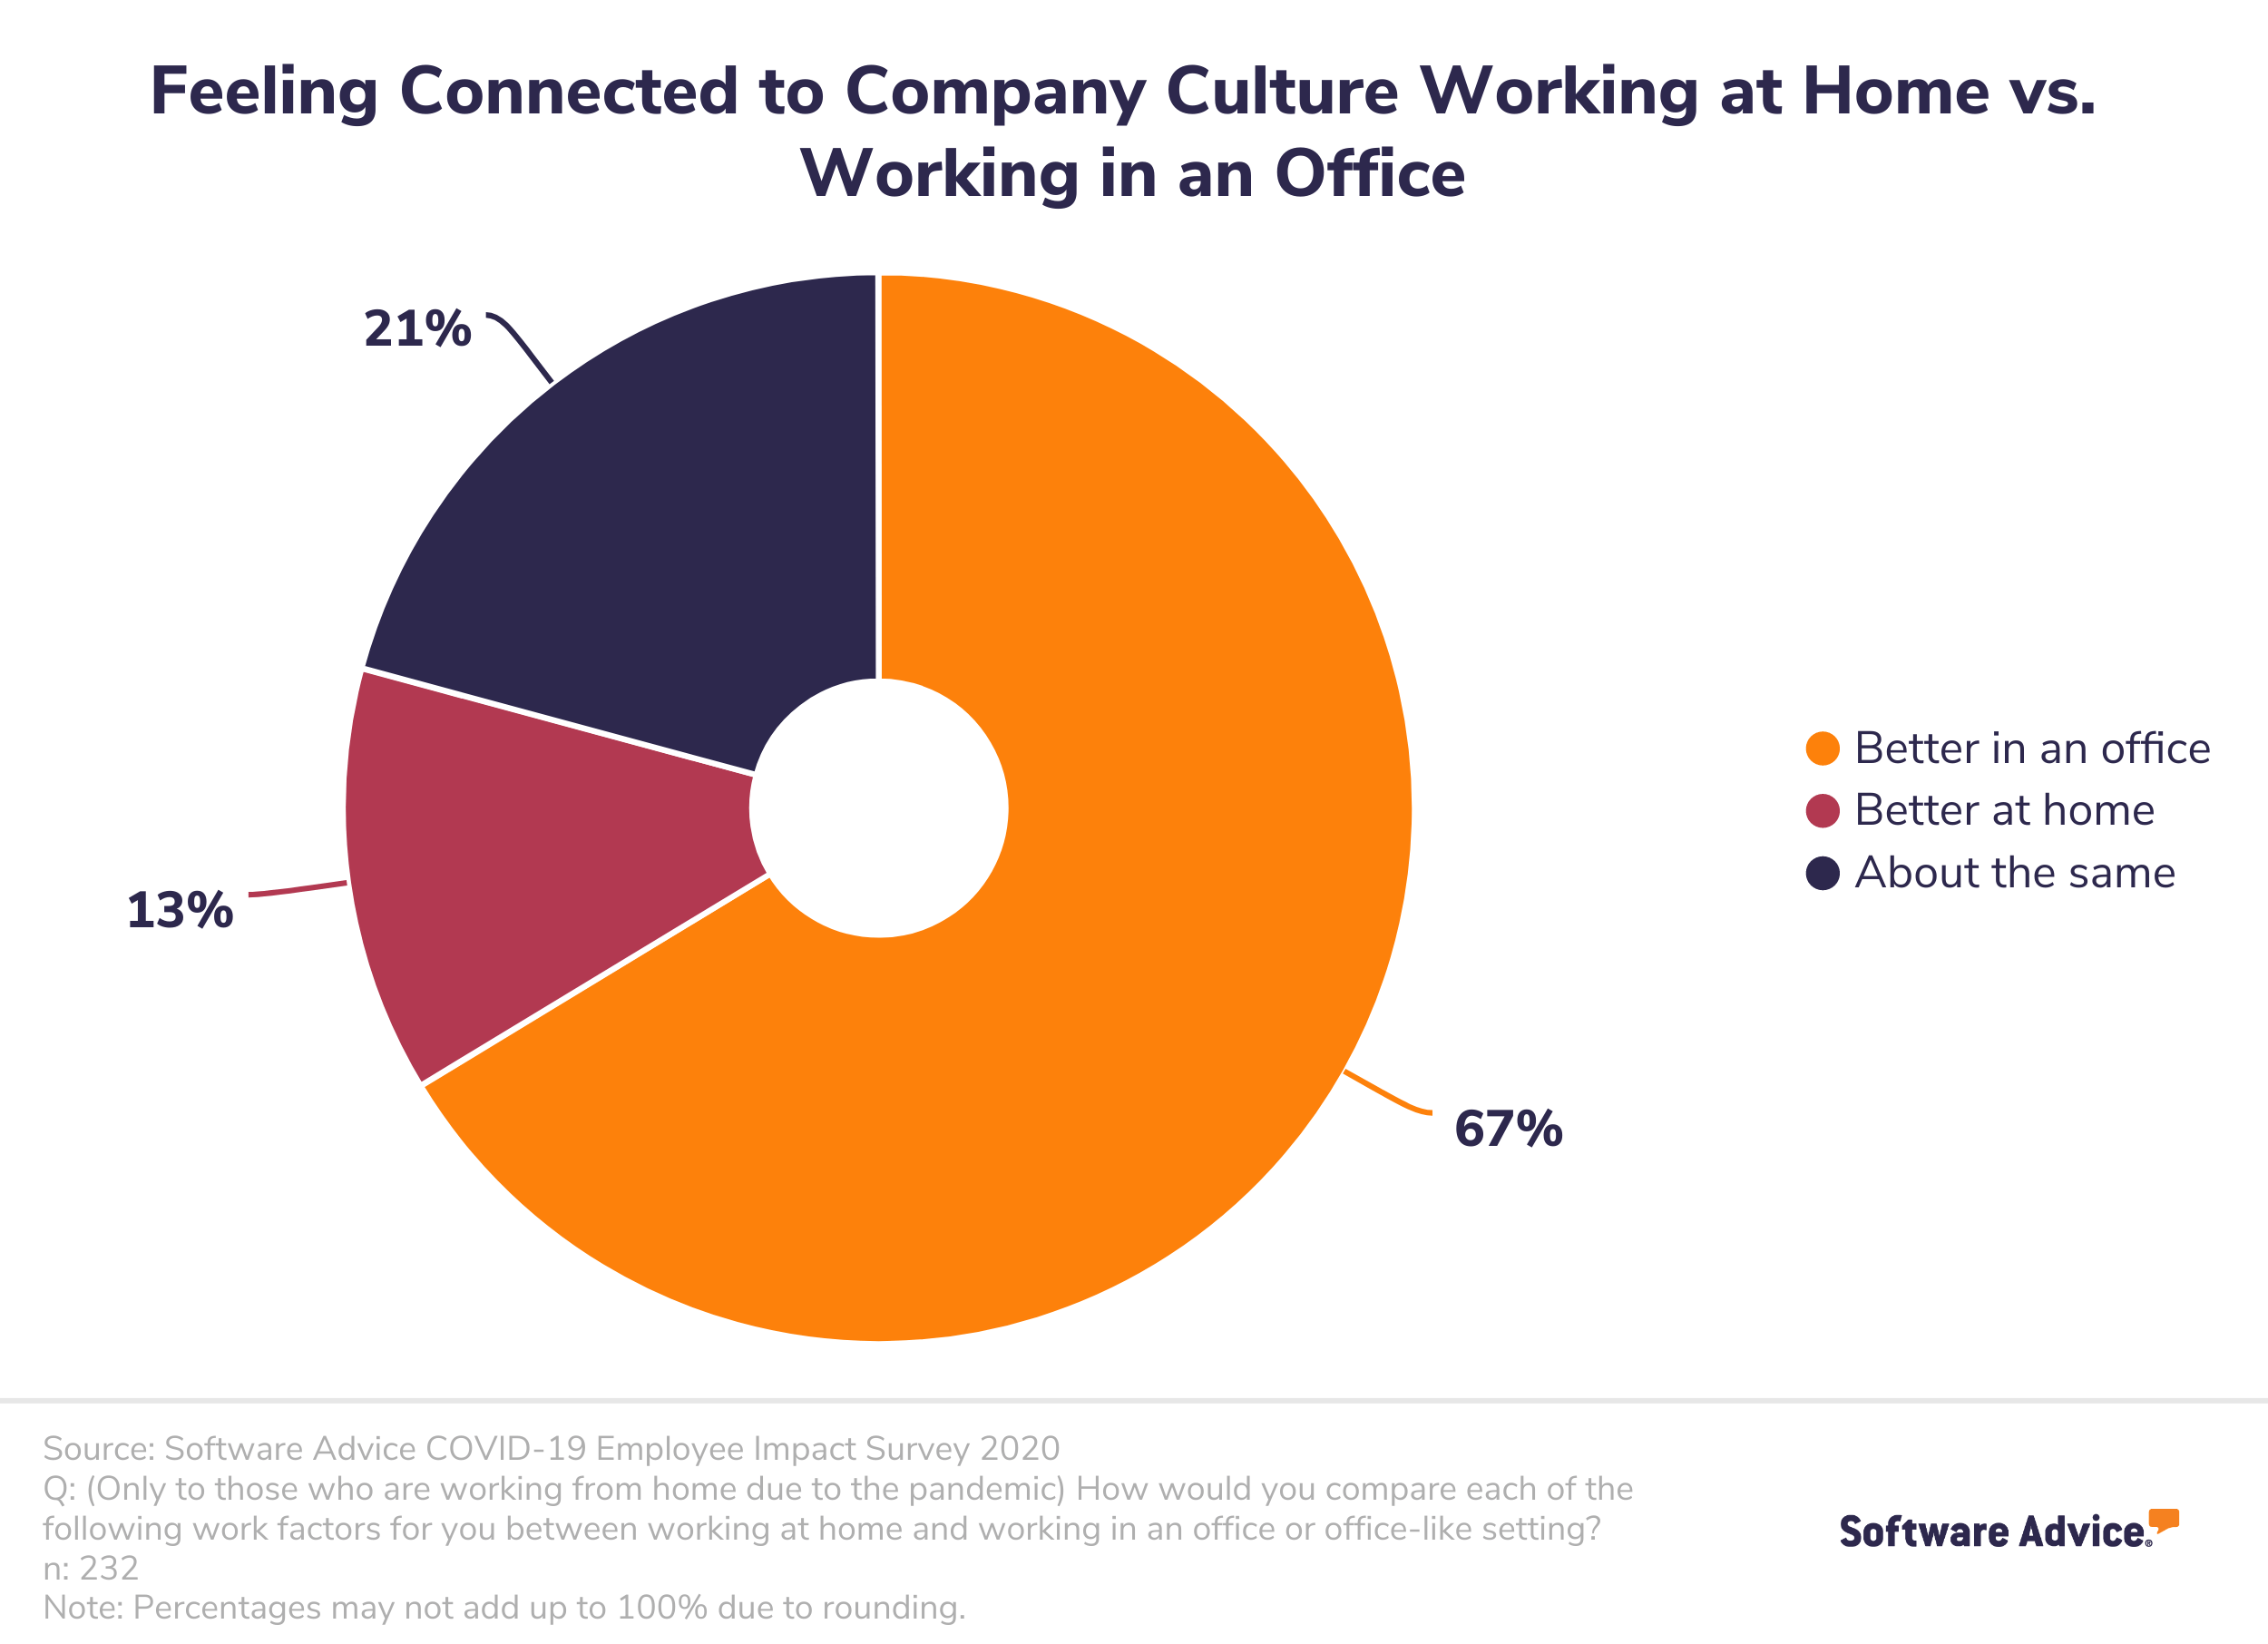 Pie chart showing employees feel more connected to the company culture when work in an office vs. when they work from home.